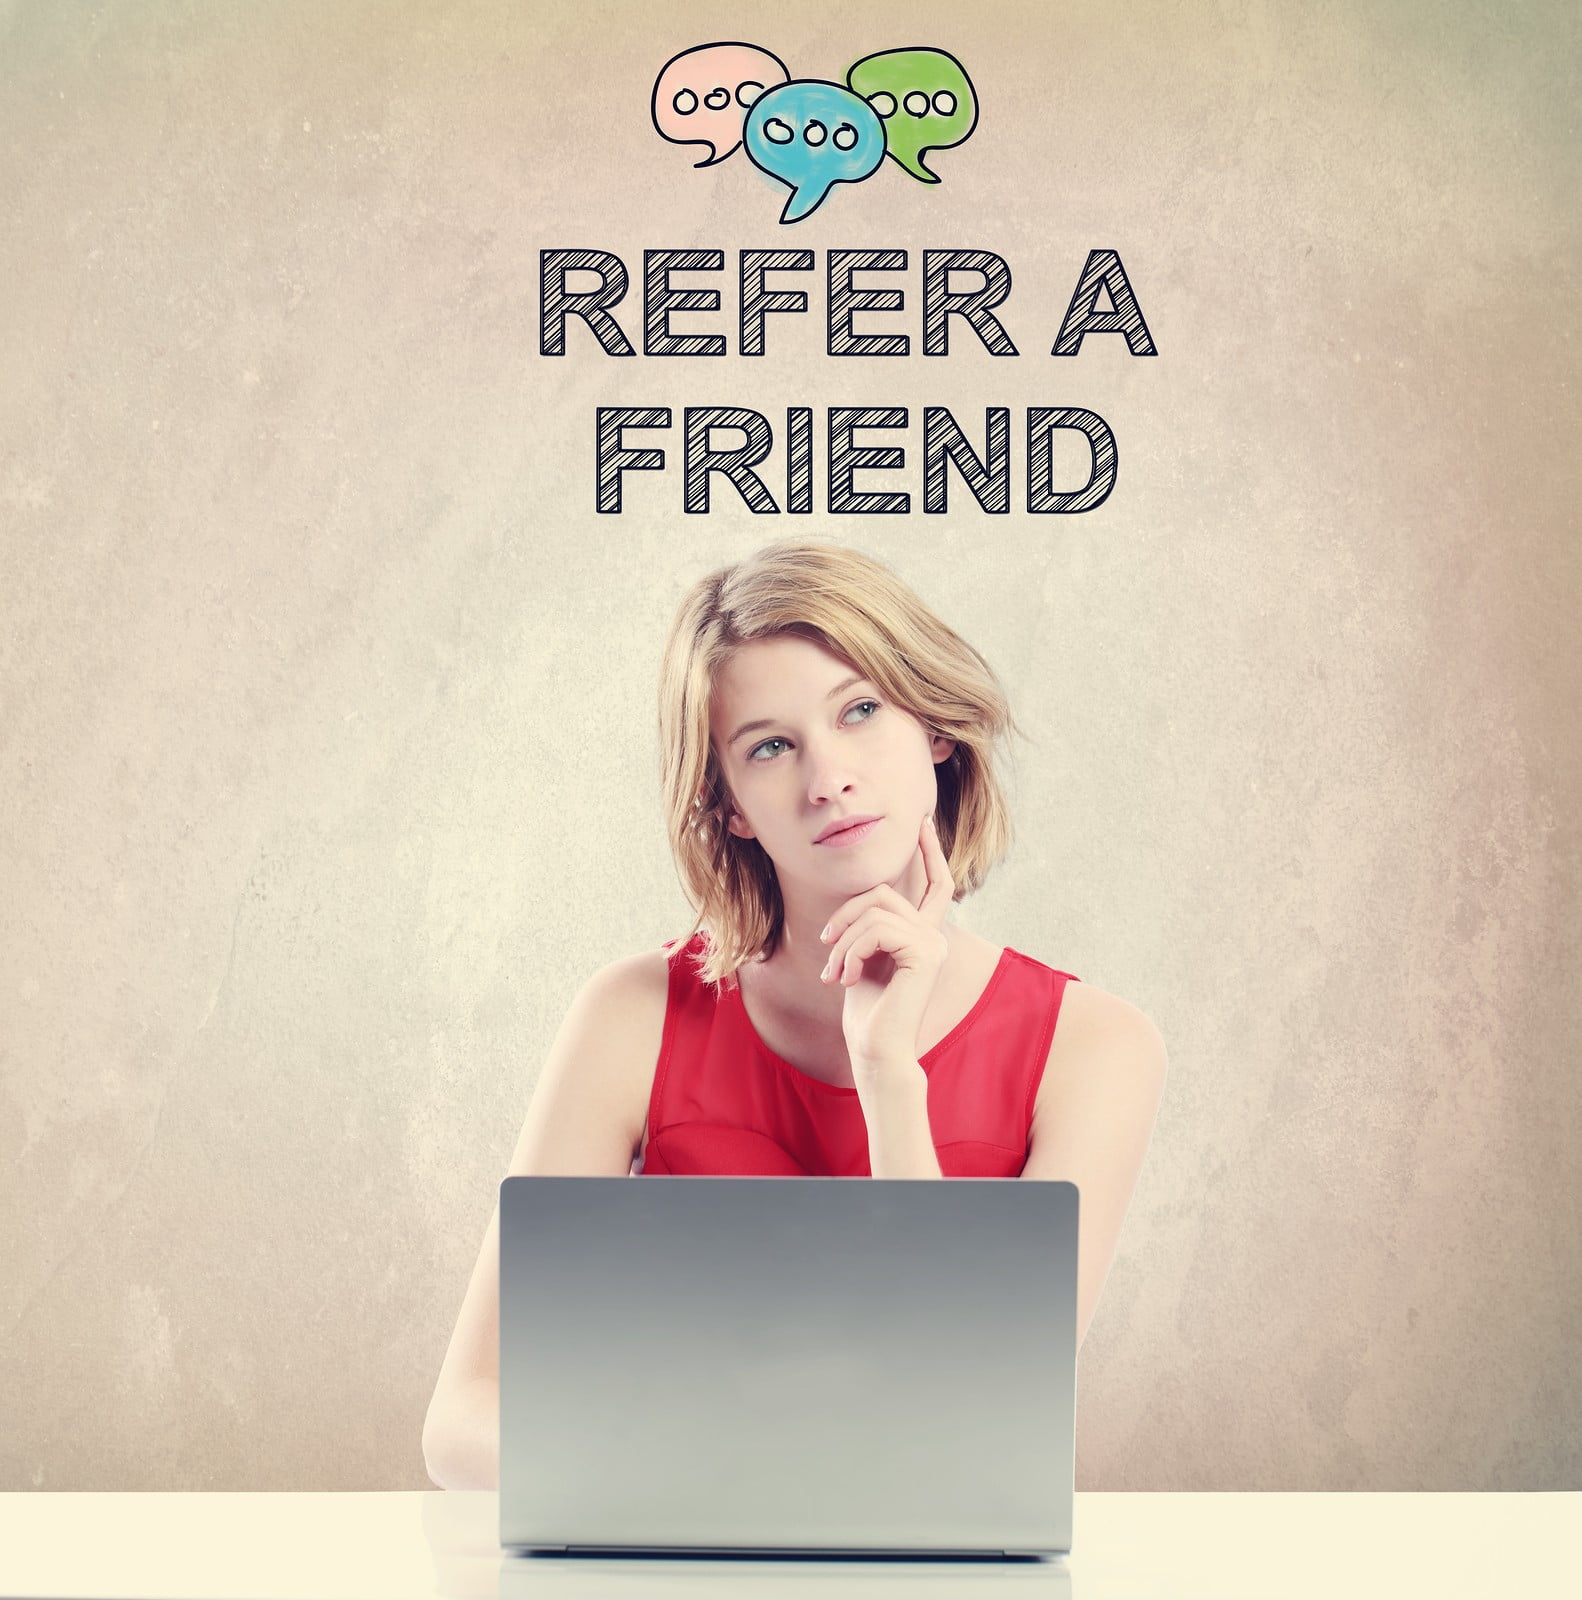 How to Boost Your Sales From Referrals